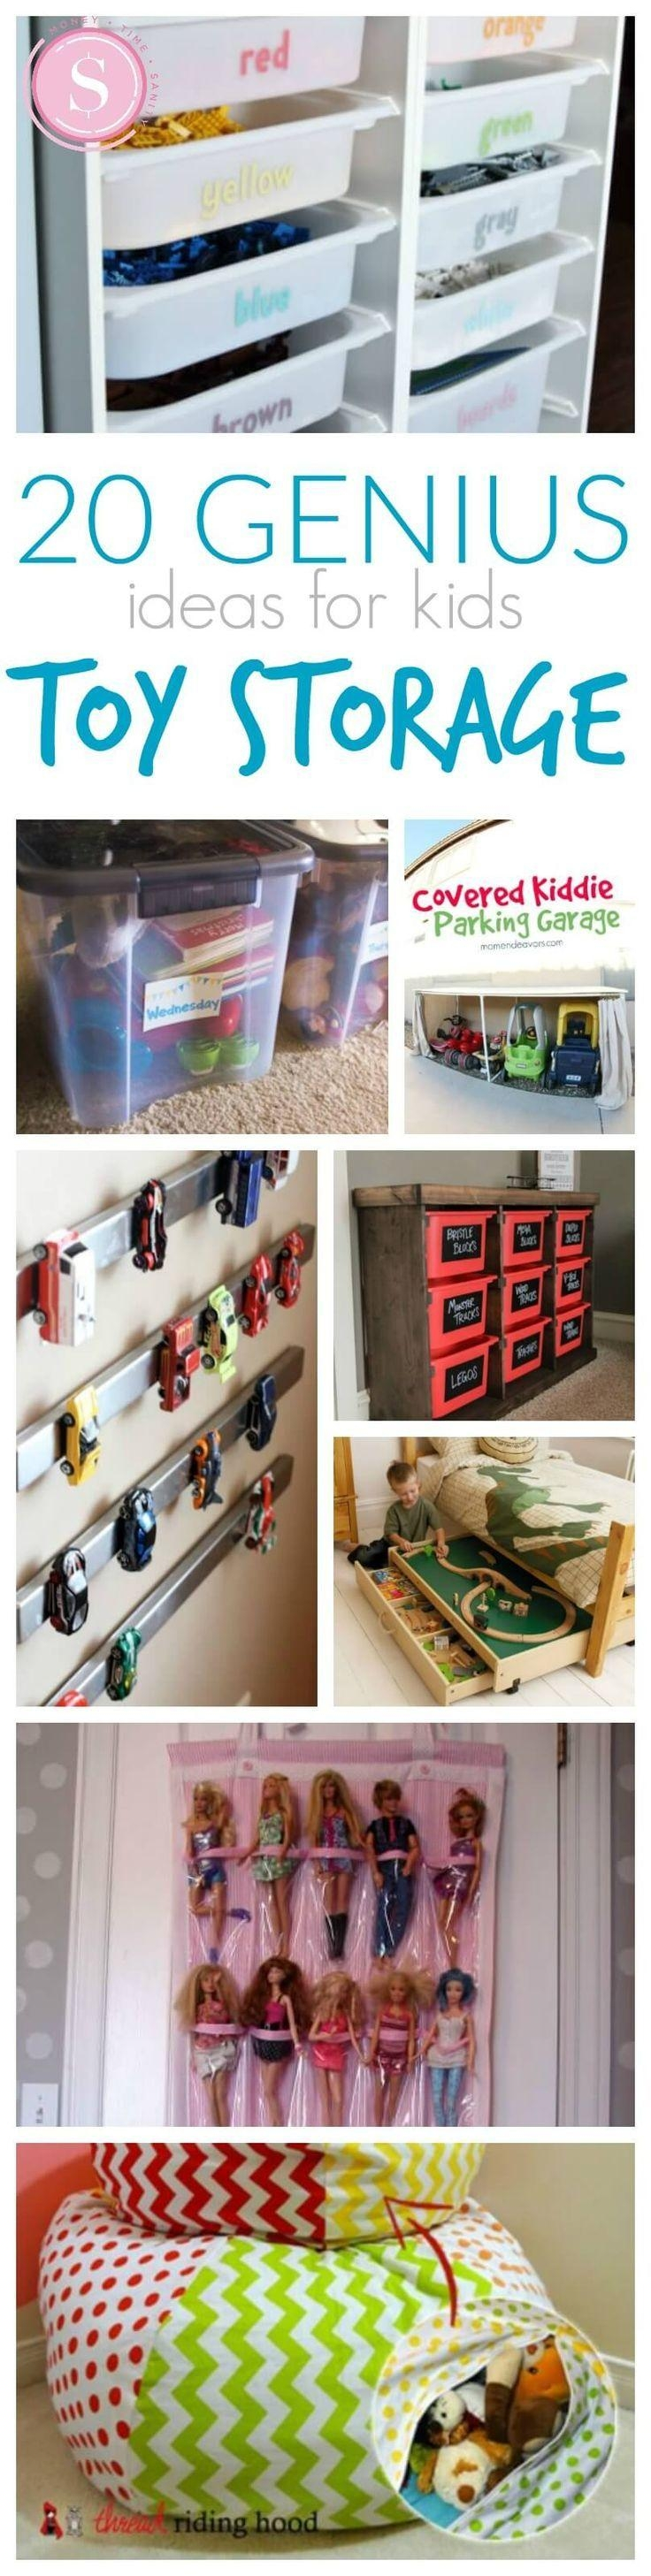 Best 25+ Hot Wheels Bedroom Ideas On Pinterest | Auto Wheels, Hot Intended For Hot Wheels Wall Art (View 8 of 20)